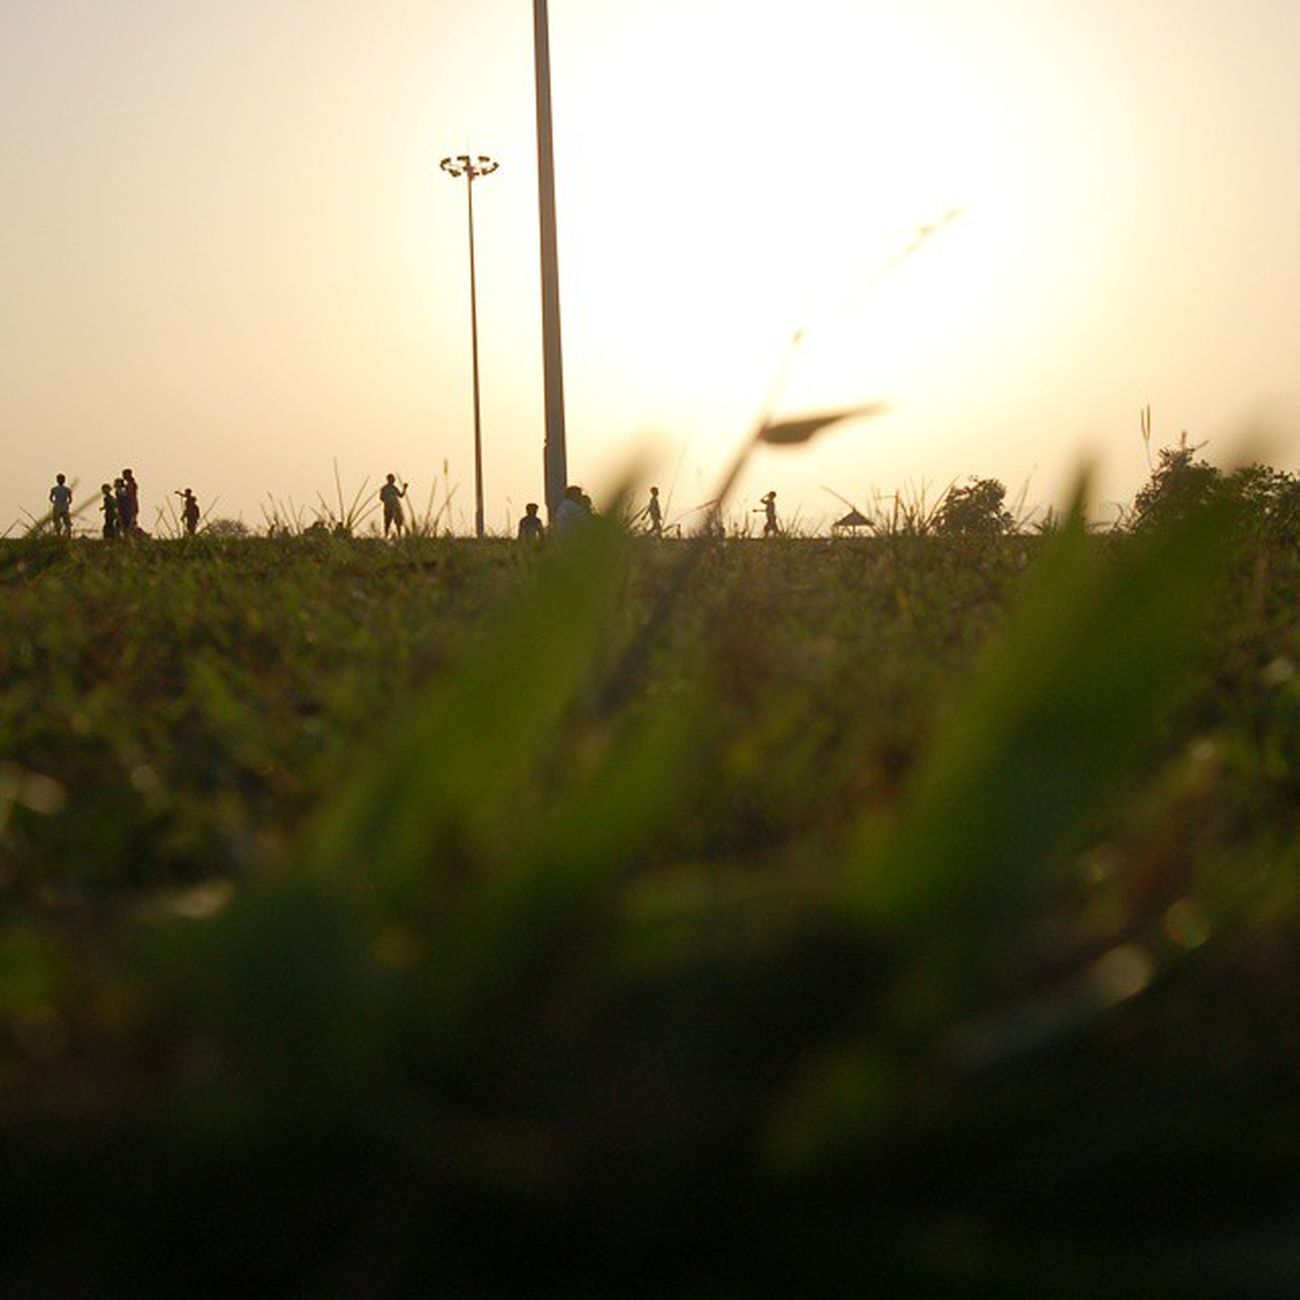 Capturing the sunset through the eyes of the blades of grass at Nisarg Udyaan. DSLR's Day Out. ^.^ Photography PlayingWithFocus Sunset DSLR ClintonRodriguesPhotography